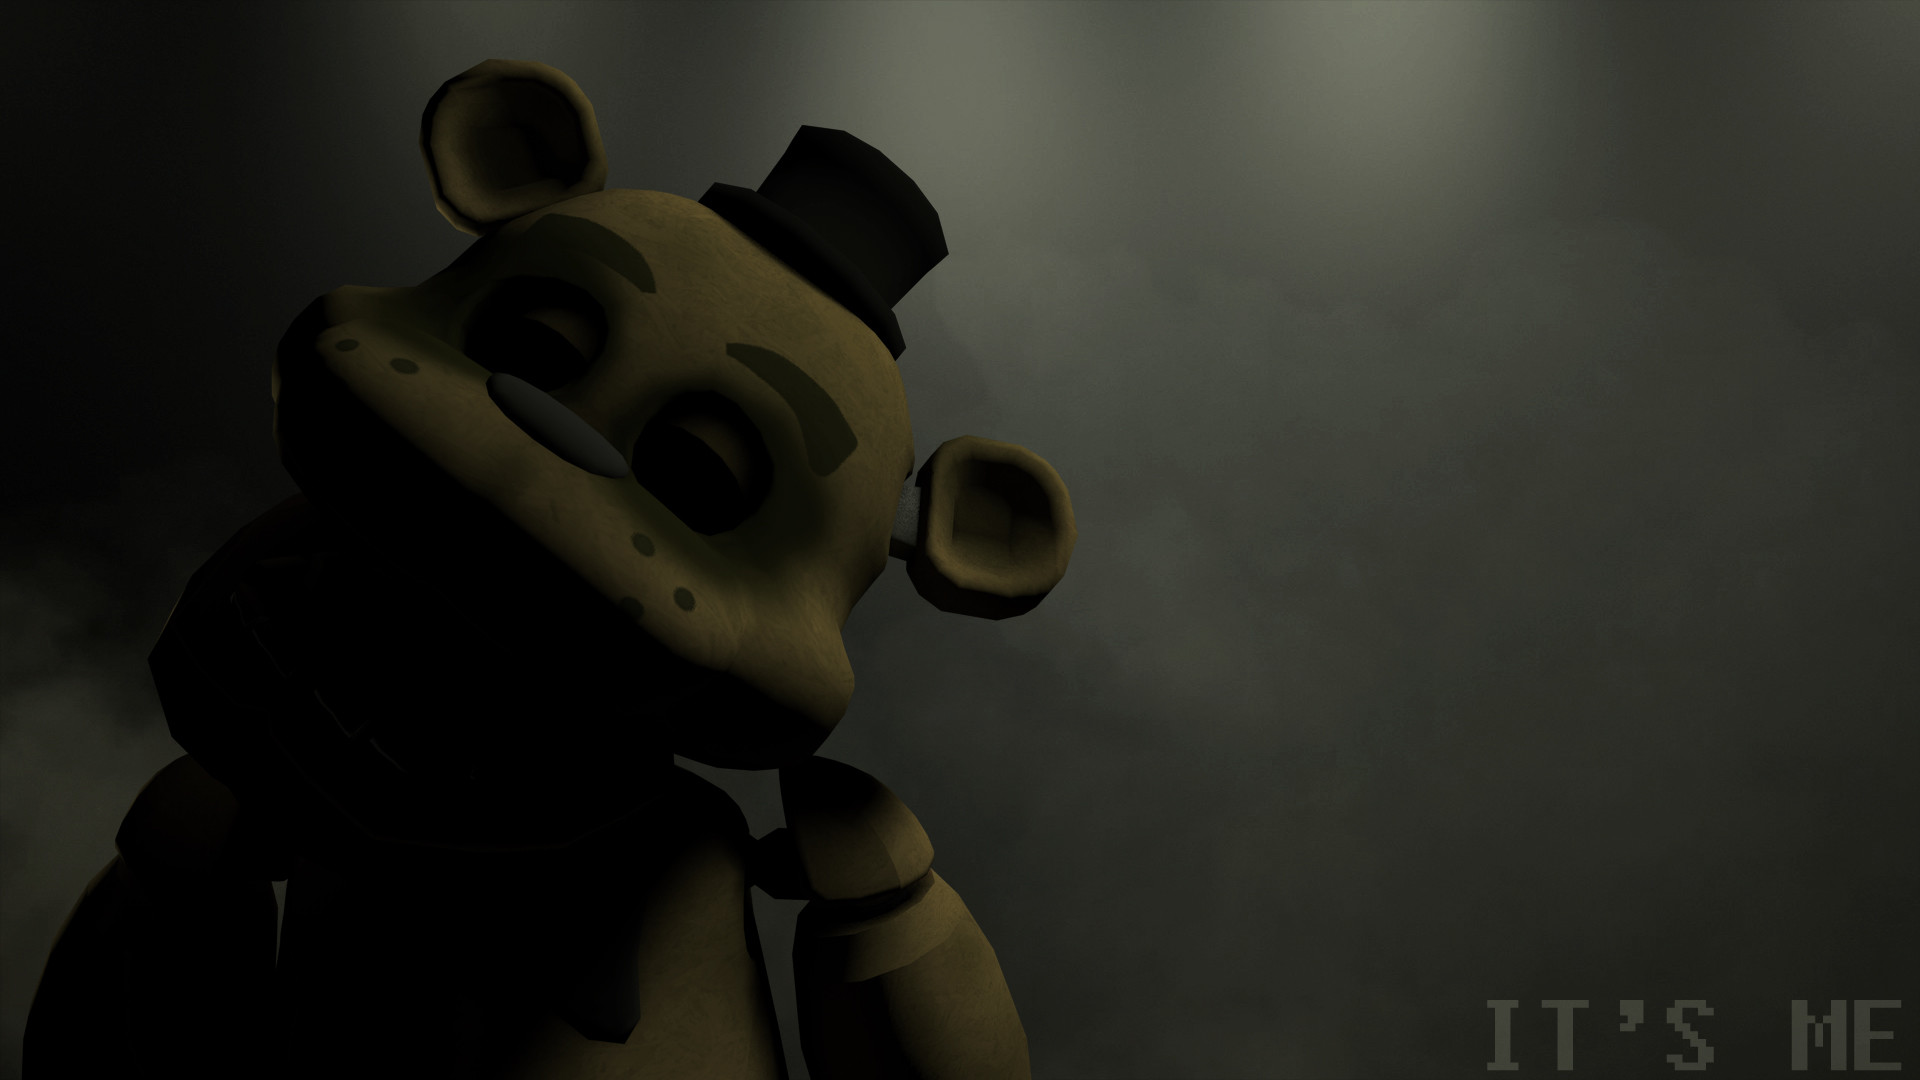 Five Nights at Freddy's Bonnie Wallpaper DOWNLOAD by NiksonYT on .